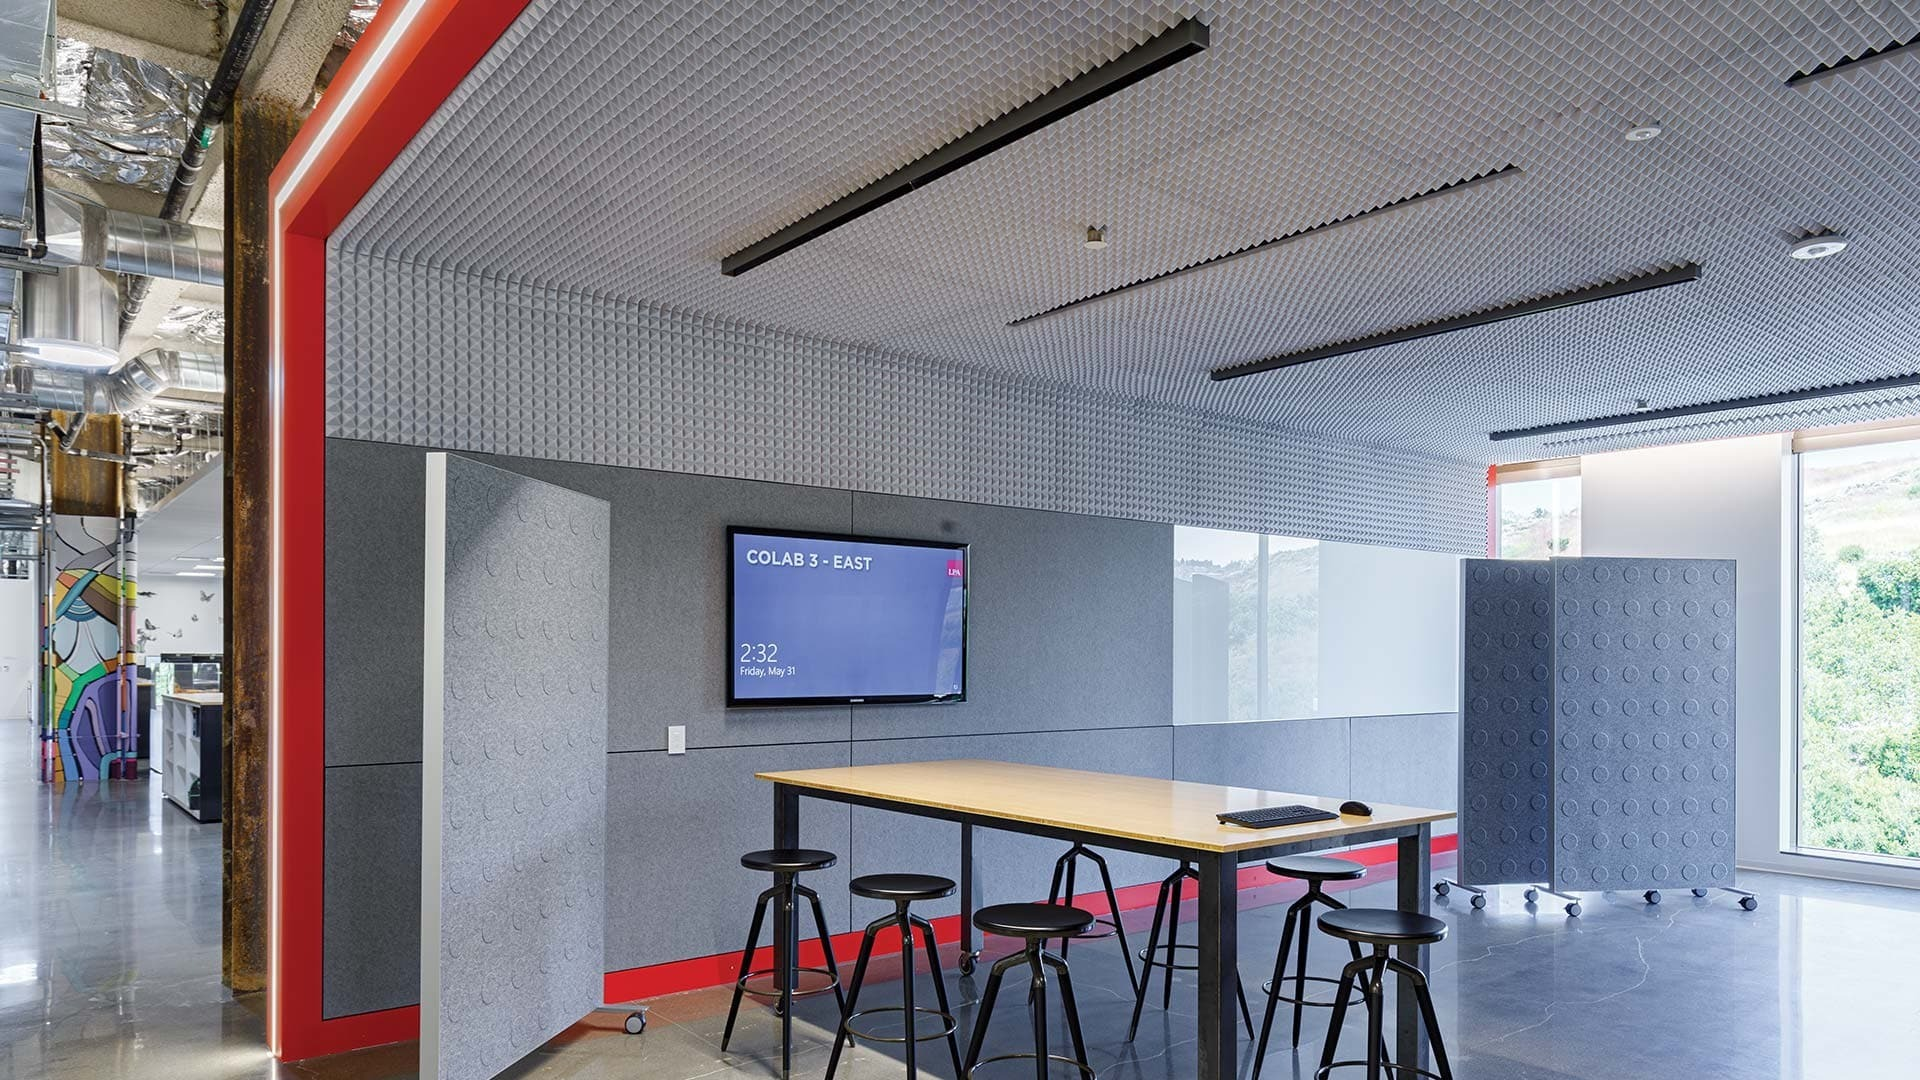 LPA Irvine Office Headquarters located in Irvine, CA featuring lighting products by Acuity Brands - A-Light. Project in collaboration with LPA, Inc. and Acuity Brands agent Performance Lighting.   Photographer: Cristian Costea (Costea Photography)